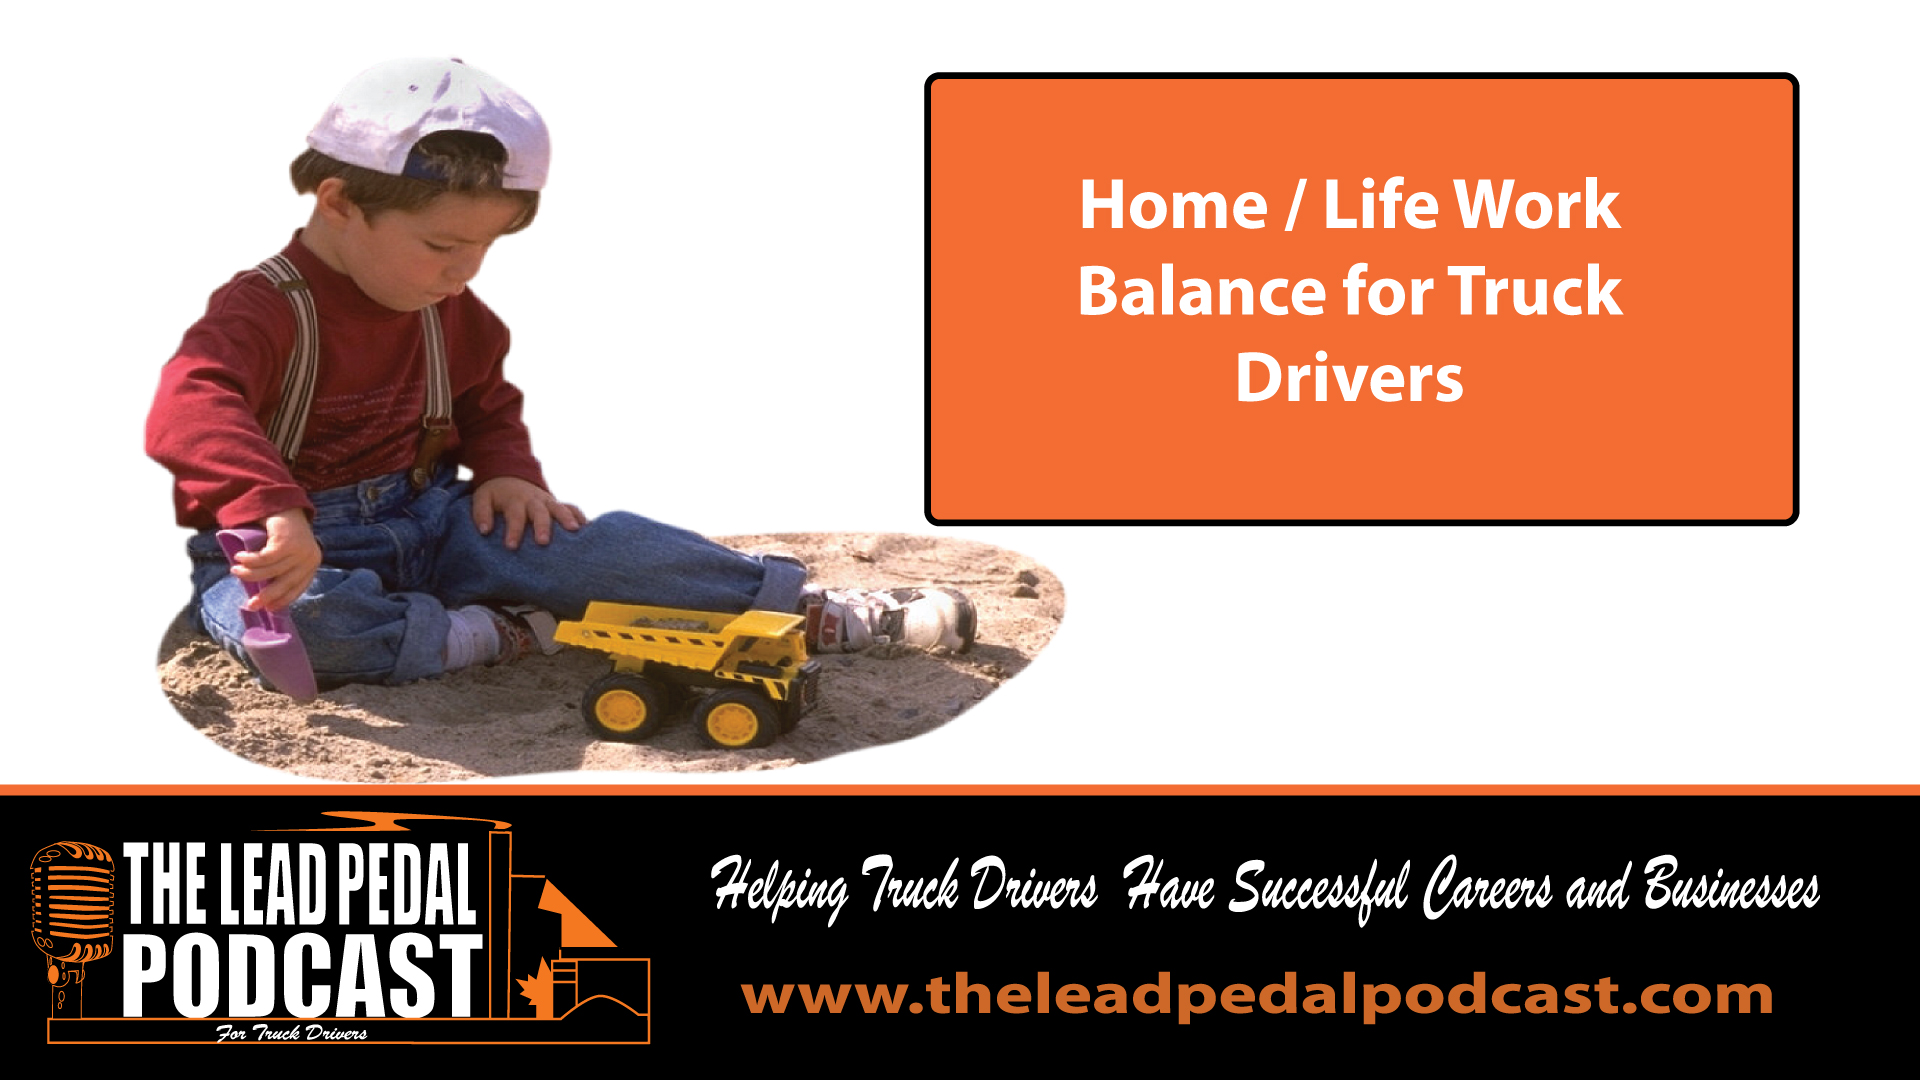 Creating a Work / Life Balance for Truck Drivers